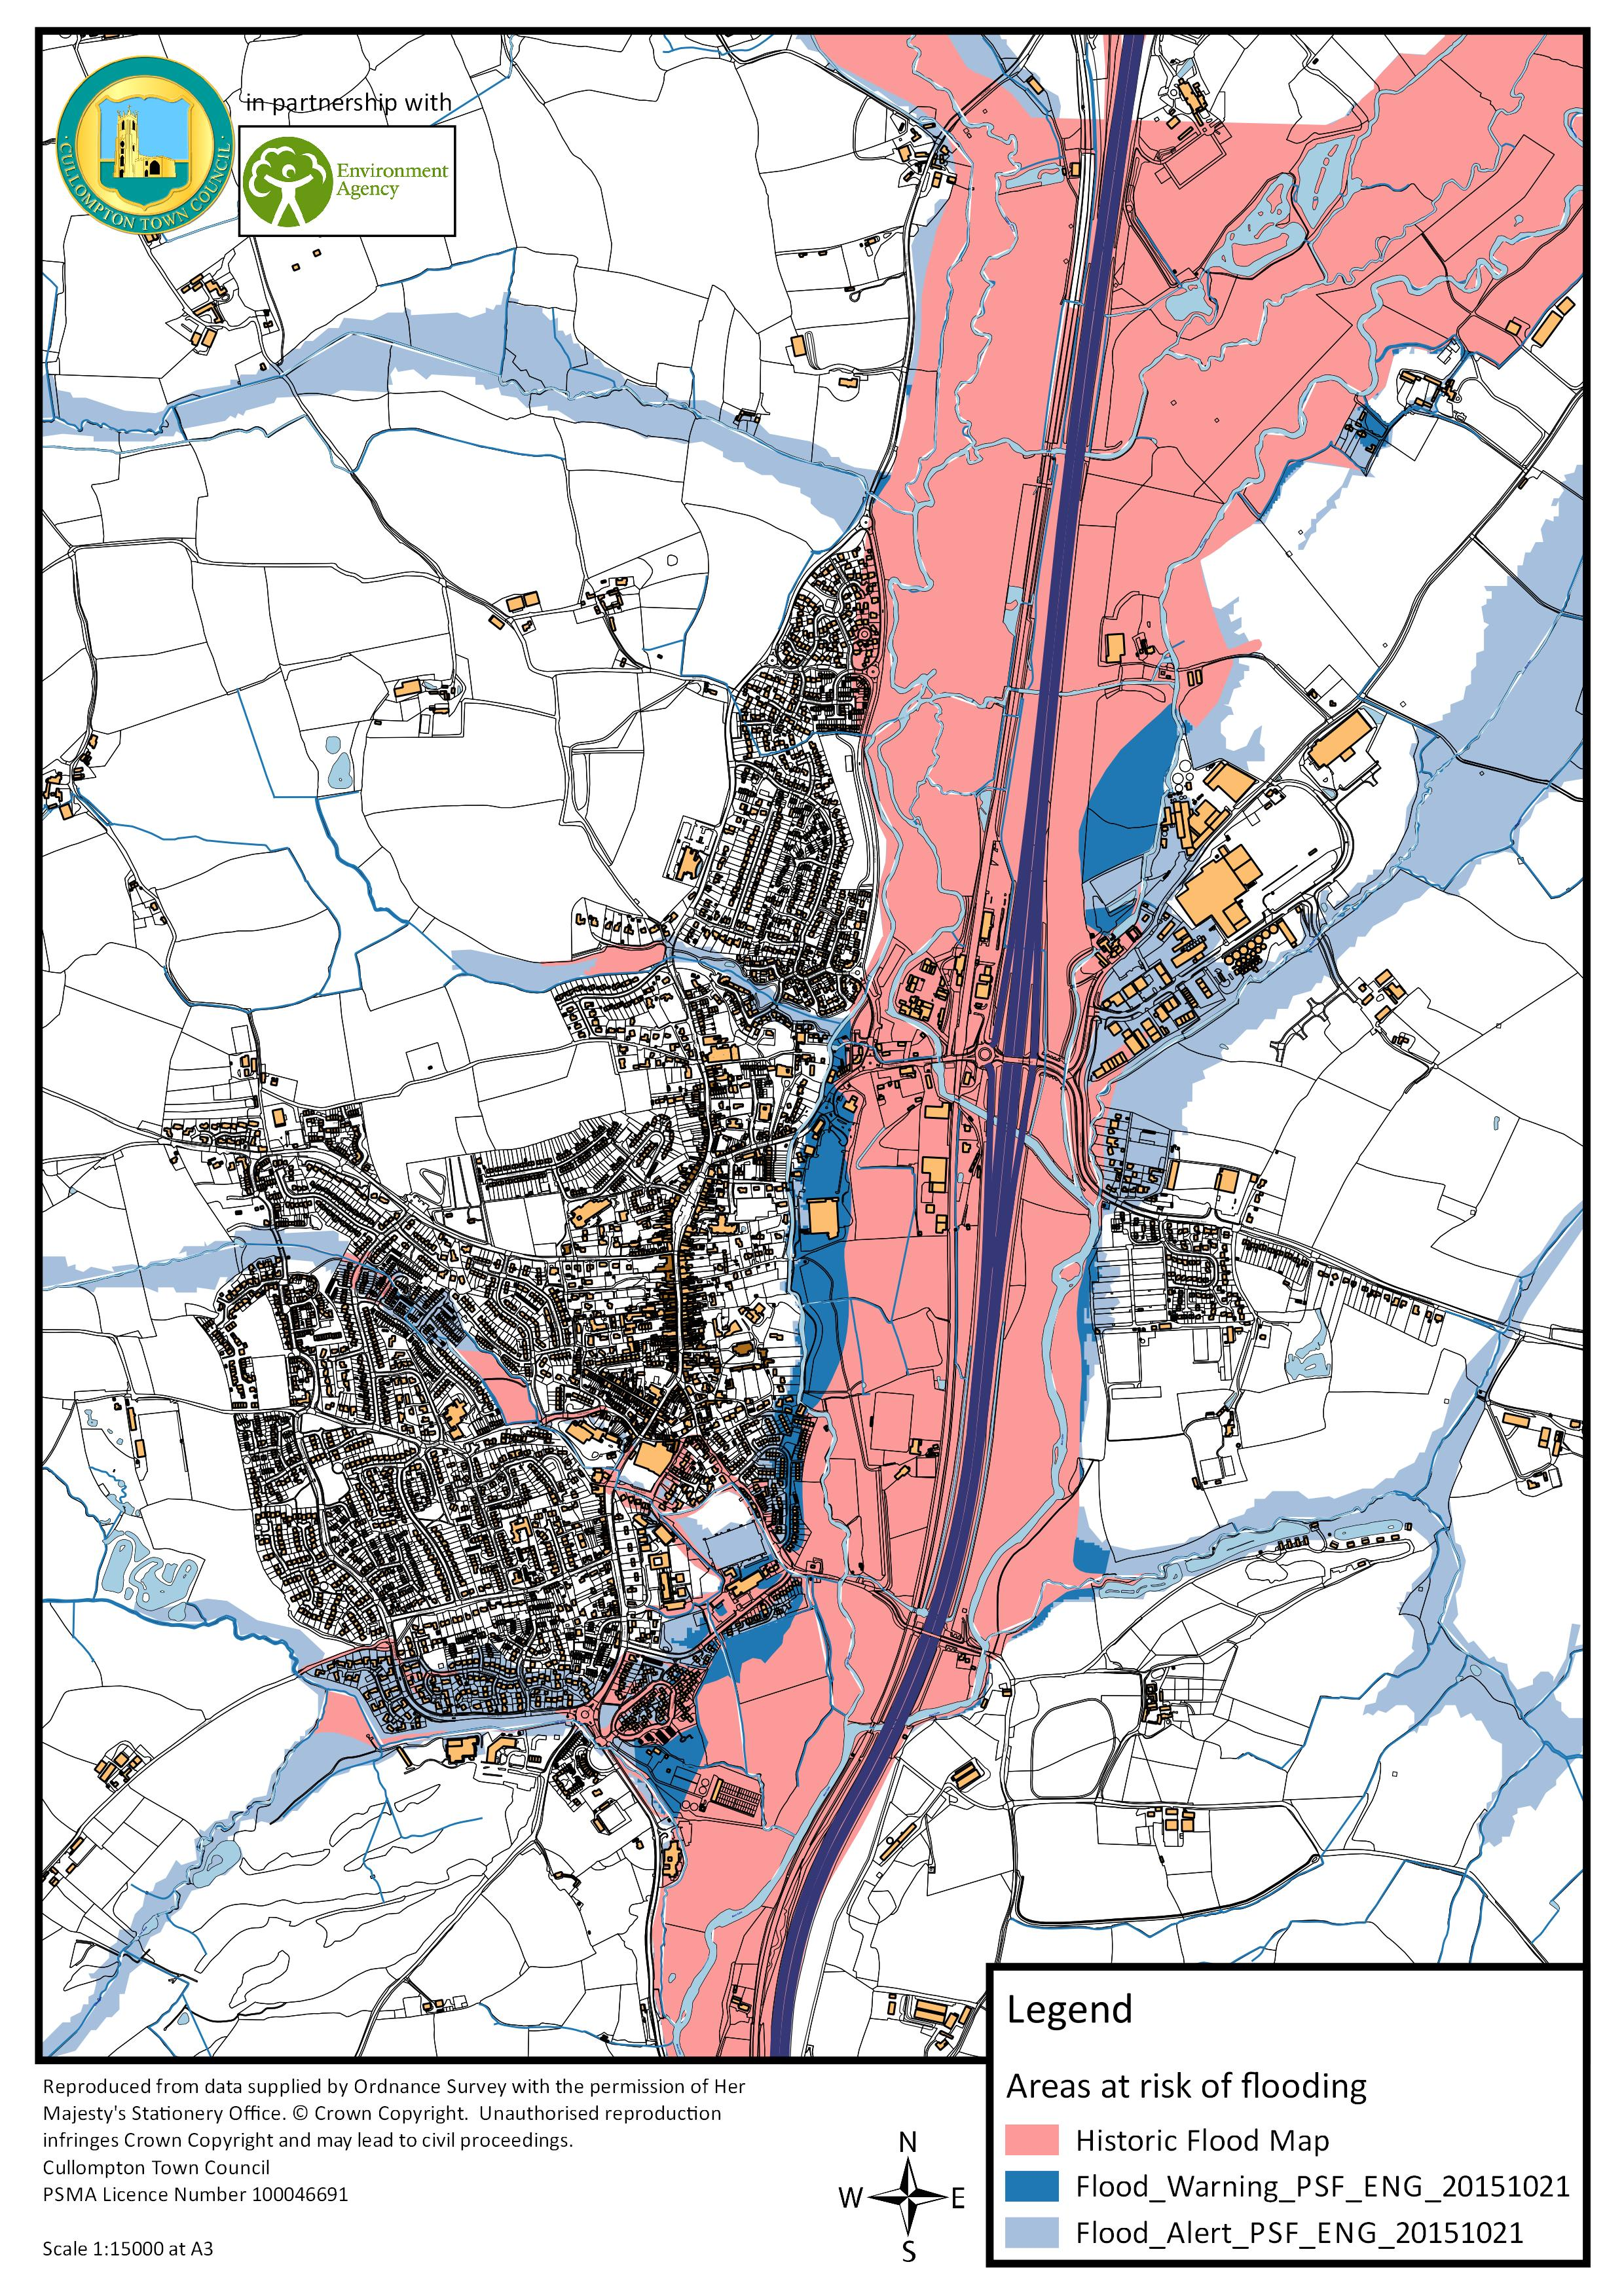 Flood risk map